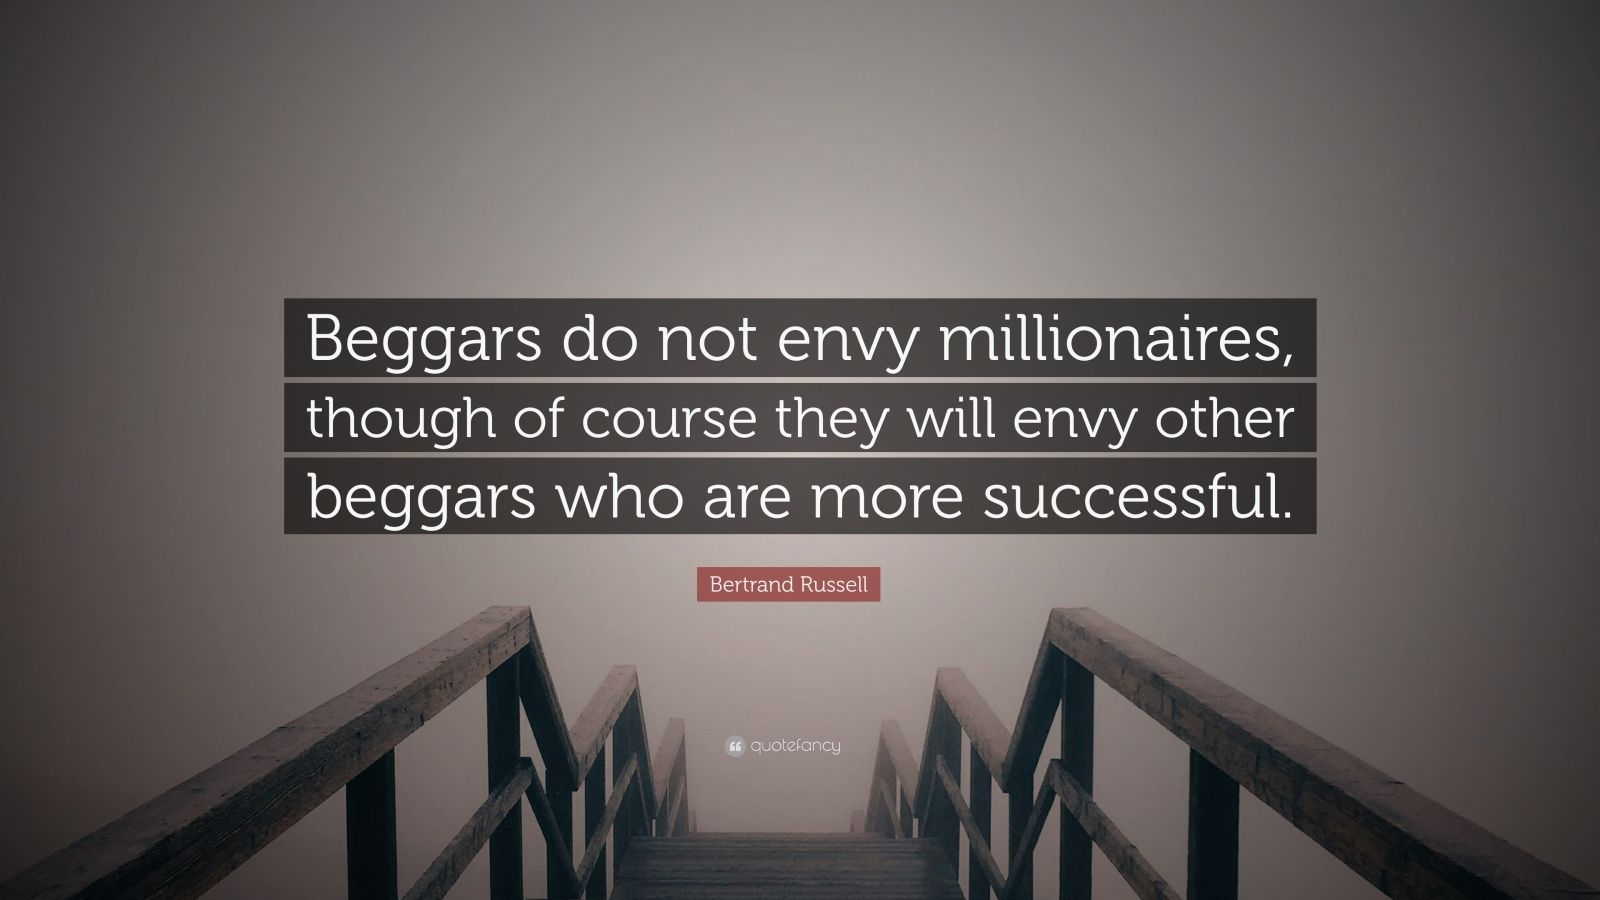 """Bertrand Russell Quote: """"Beggars do not envy millionaires, though of course they will envy other beggars who are more successful."""""""